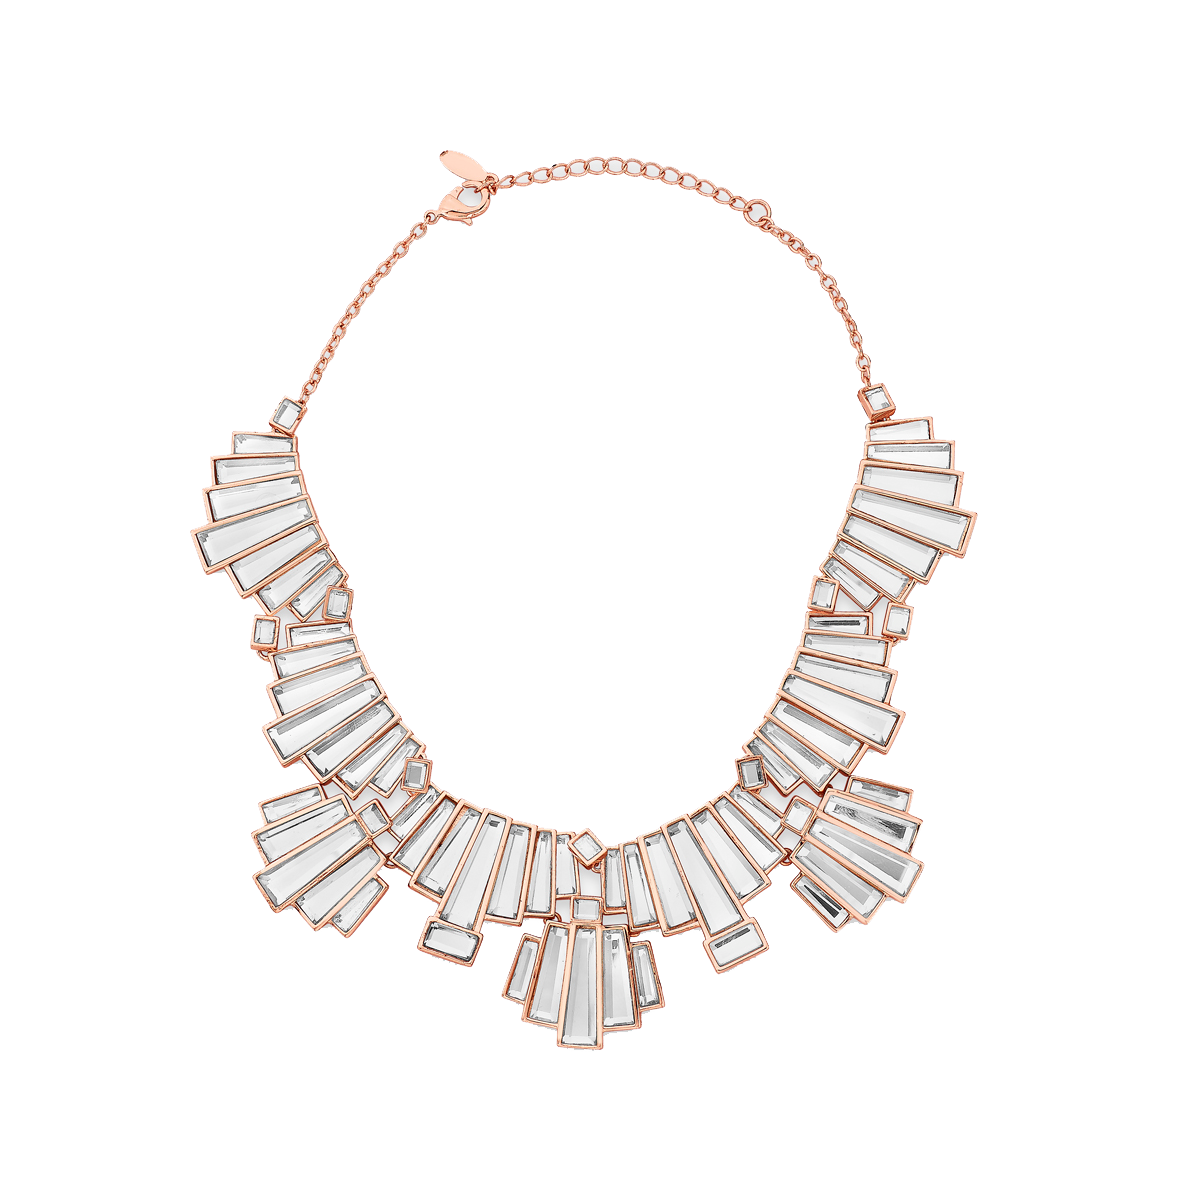 Bombay Deco Statement Mirror Choker Necklace